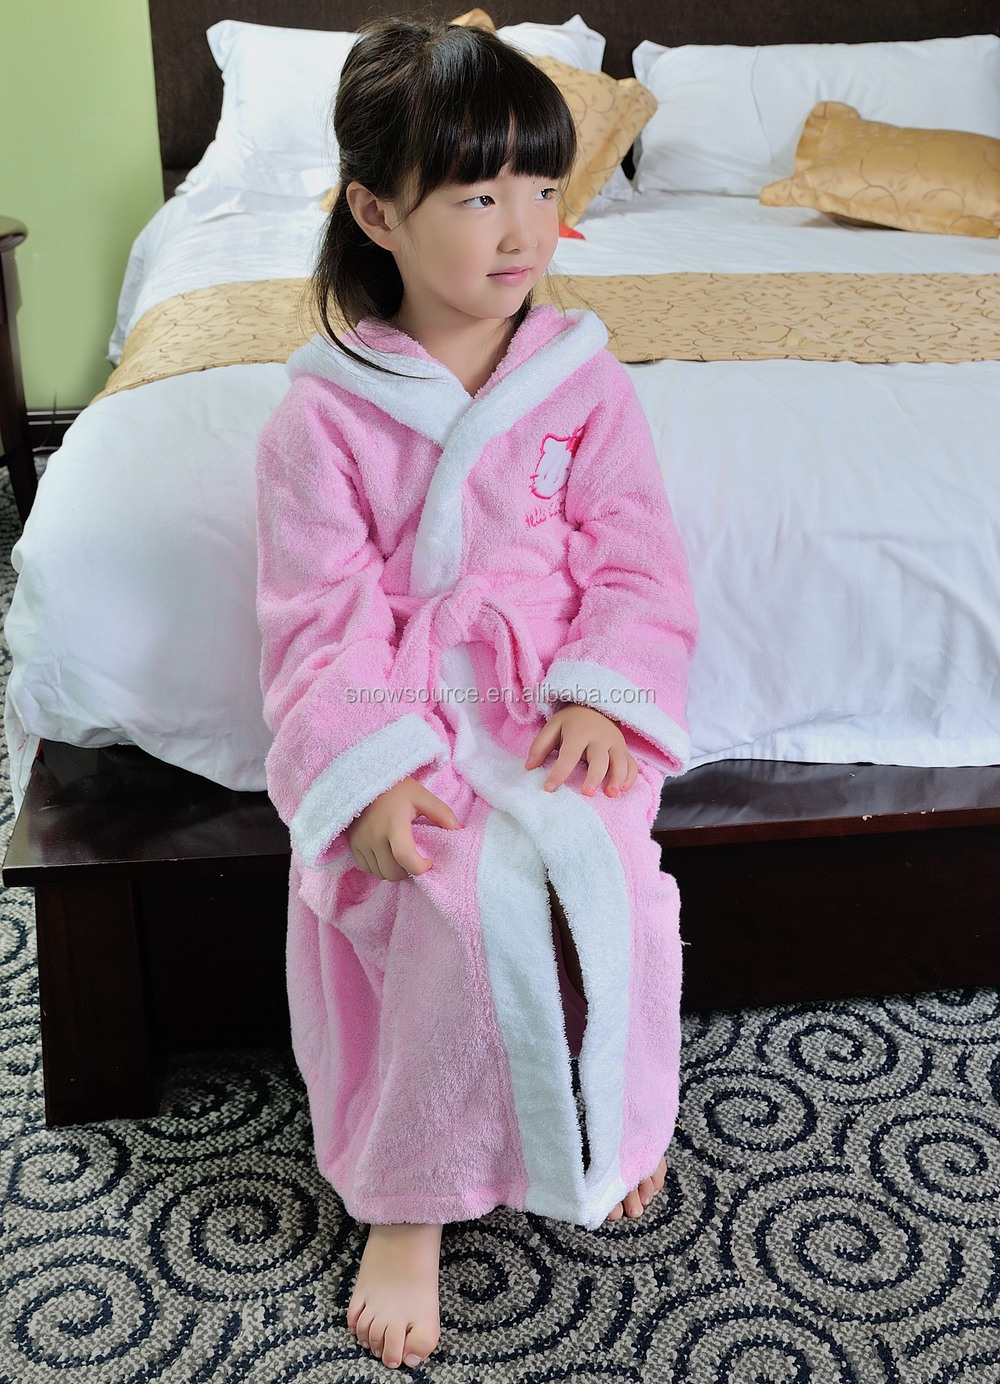 a7f2840db2 Wholesale Pink Satin Warm 100 Cotton Chenille Cheap Girls Robes ...